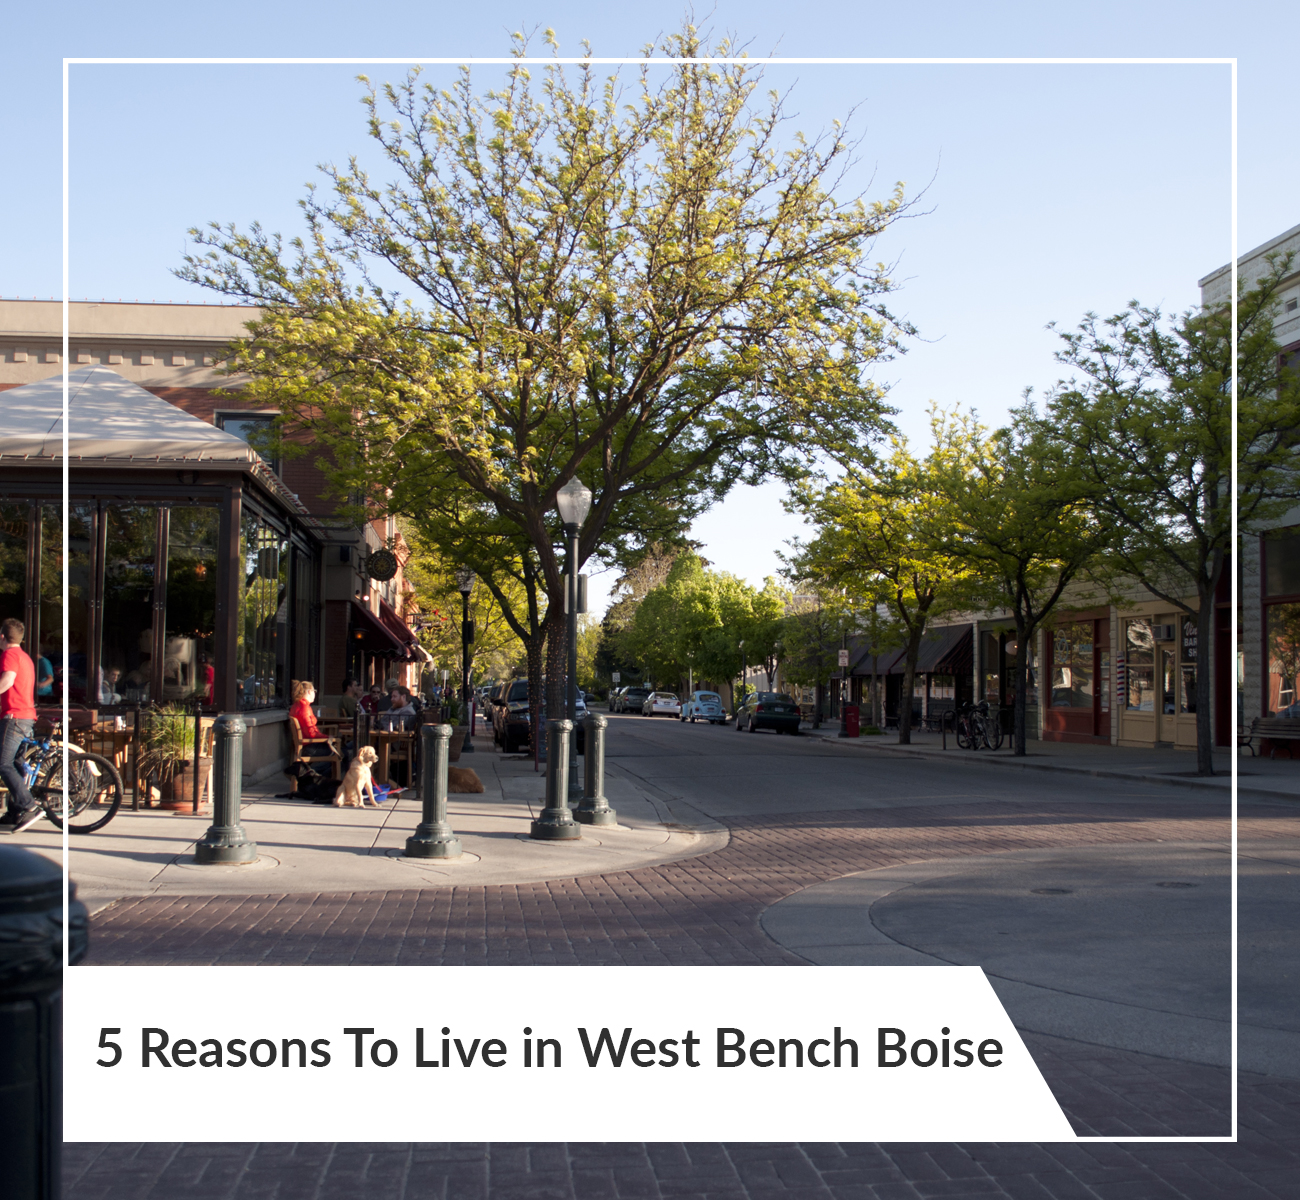 5 Reasons To Live in West Bench Boise